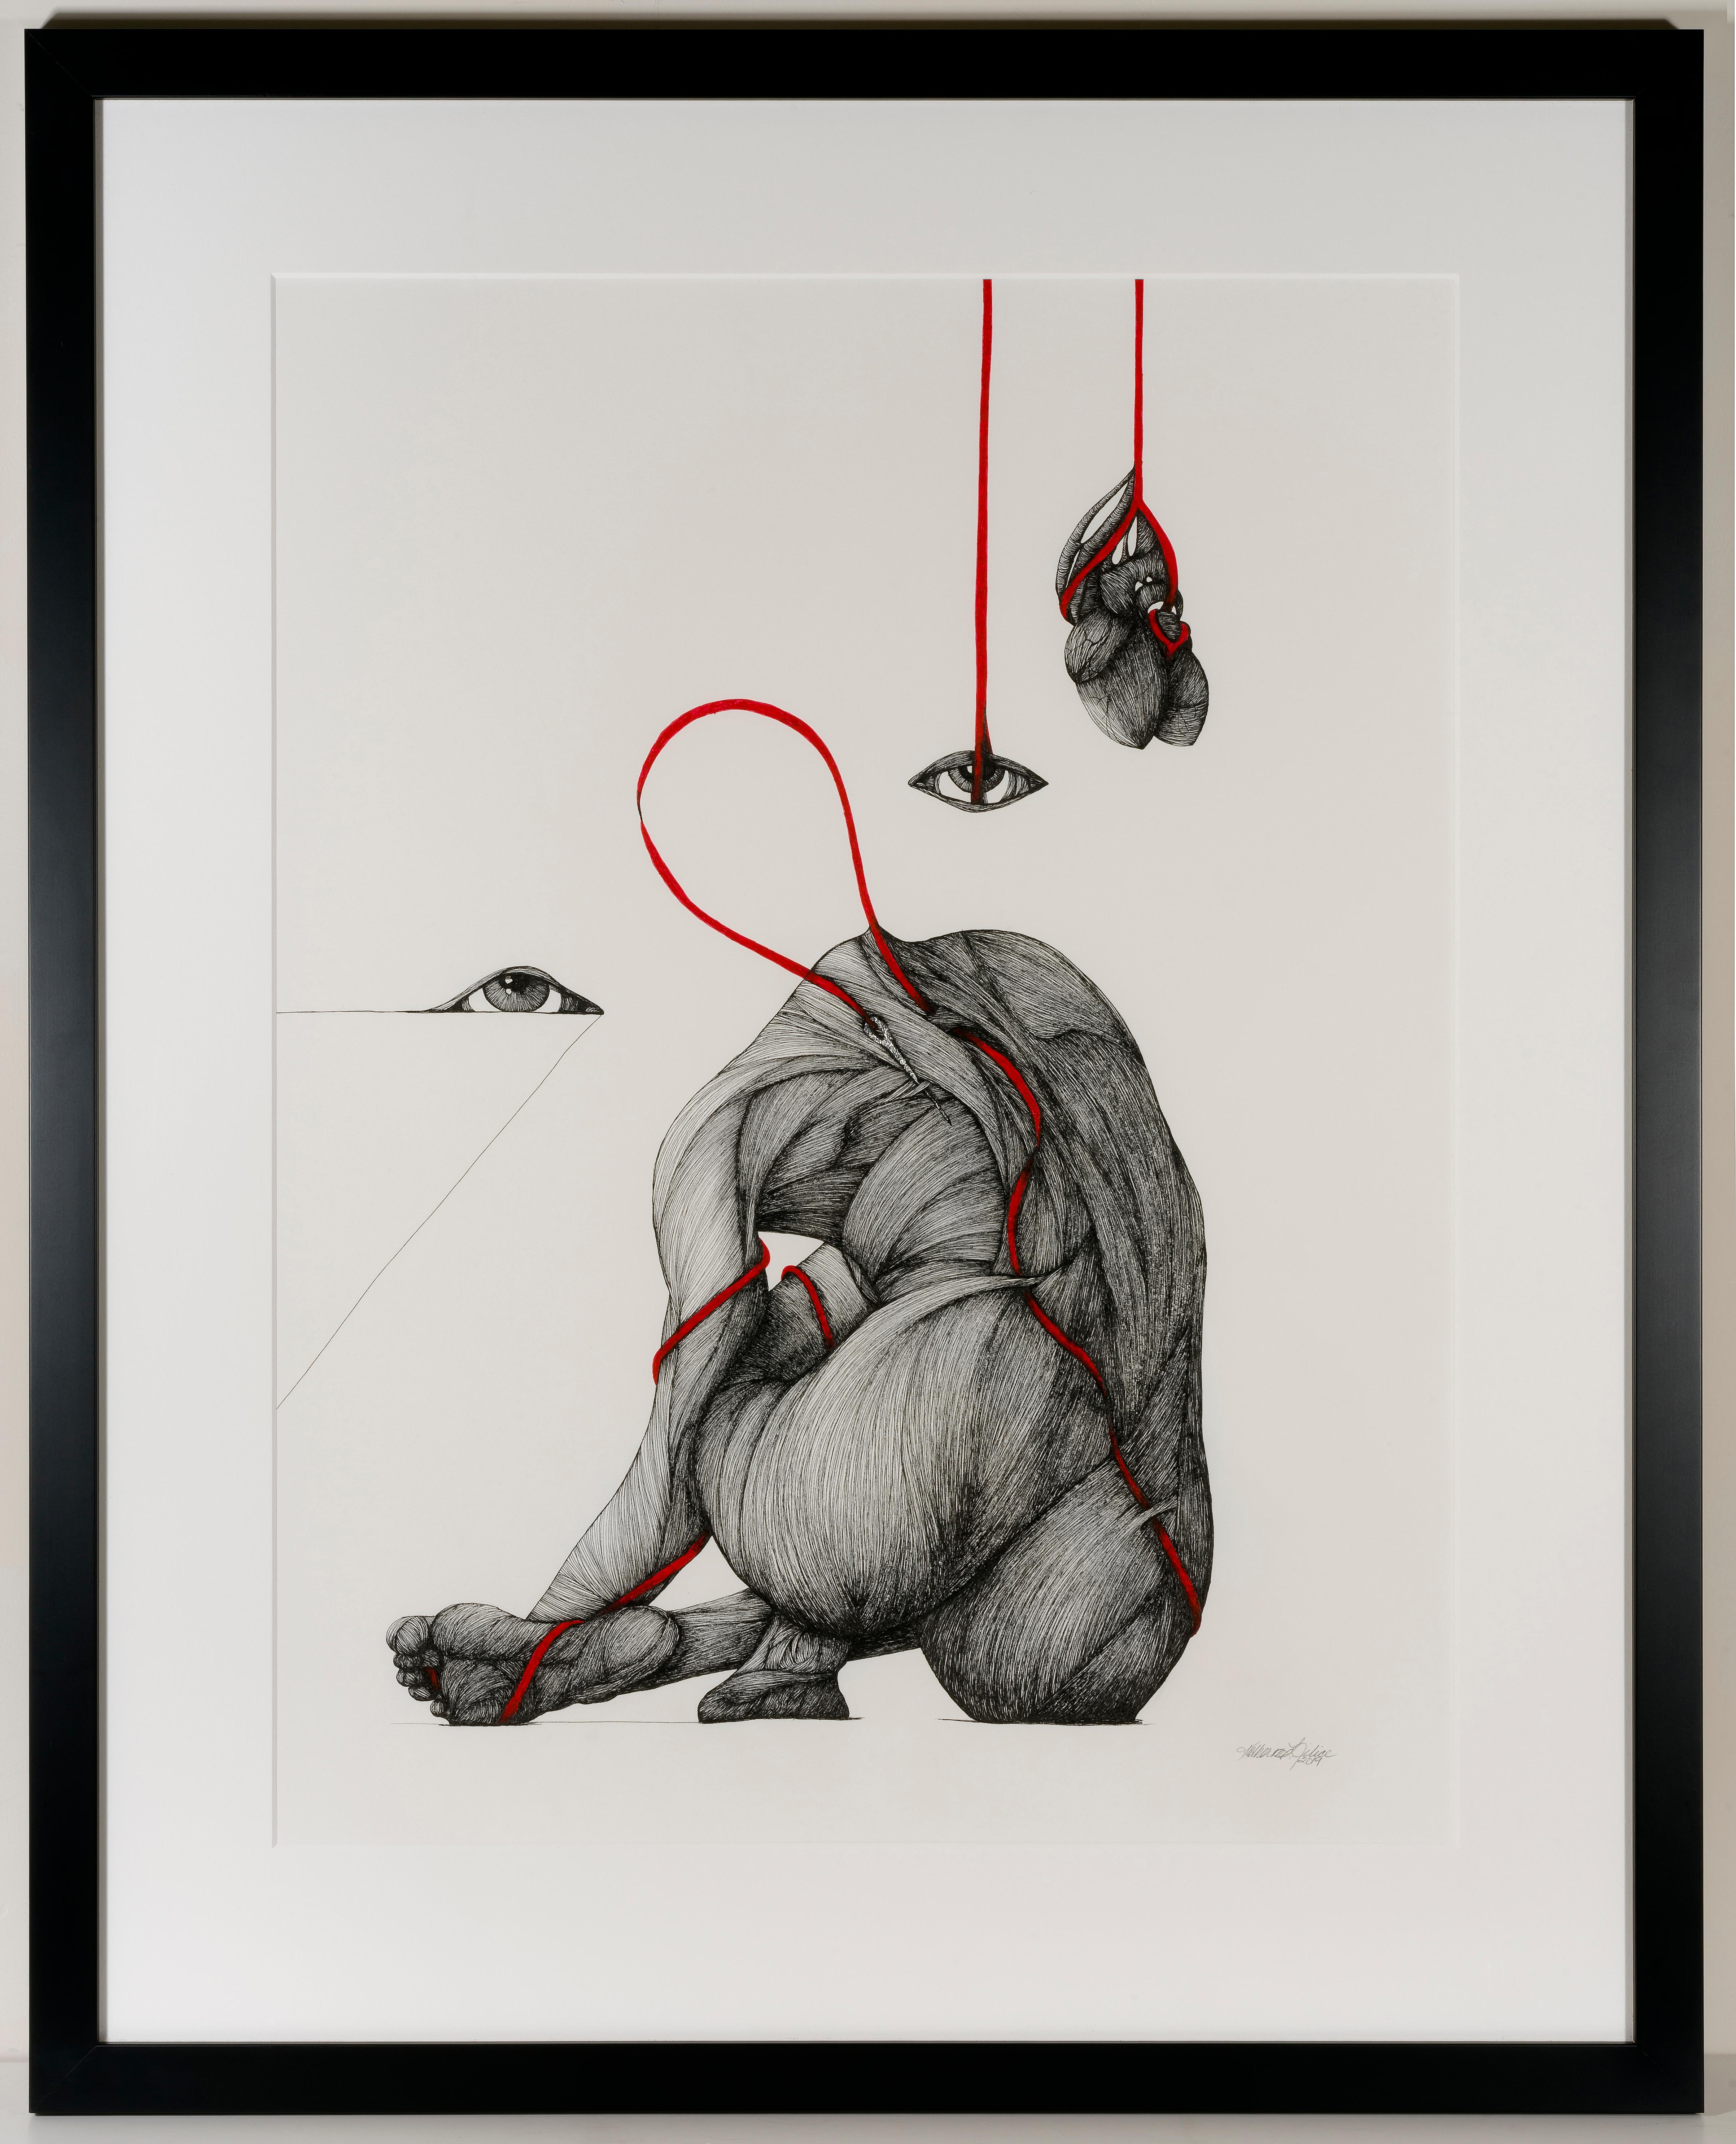 Communion- Ink on Paper with Silver Leaf, Black, White, Red Surreal Drawing